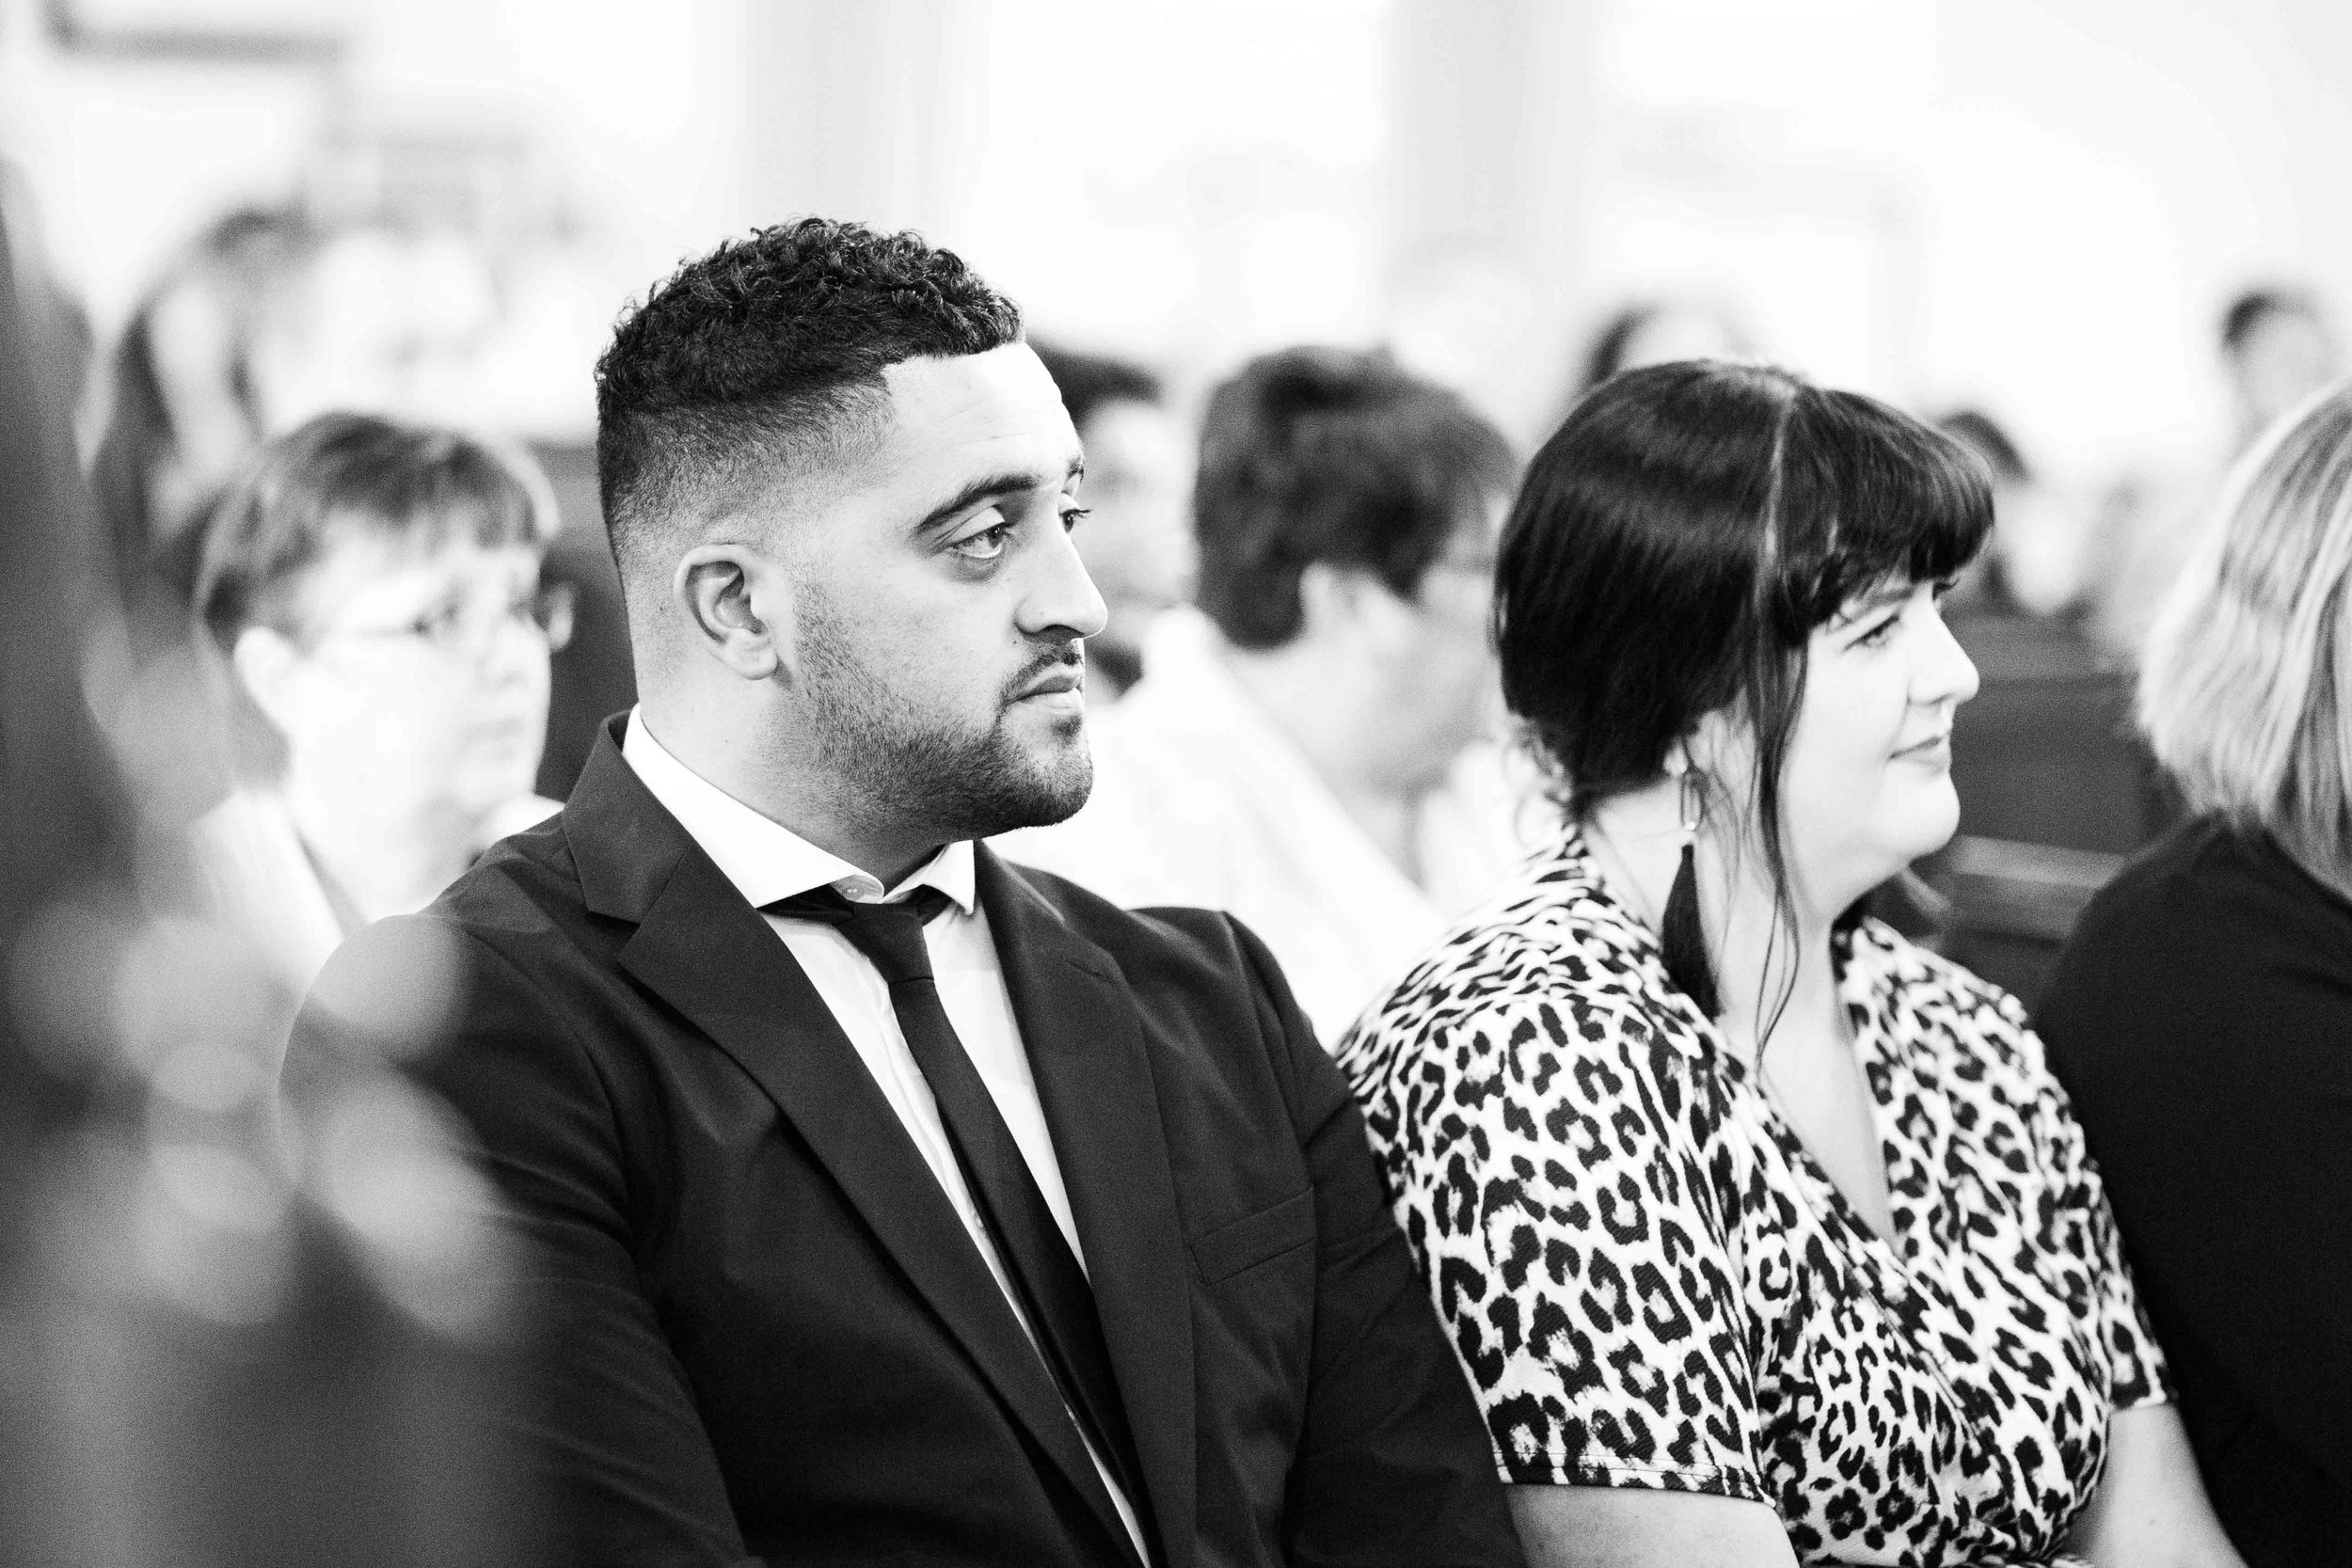 Lea-cooper-photography-christening-photographer-baptism-wolverhampton-wednesbury-walsall-willenhall-dudley-church-chapel-event-photography-8.jpg